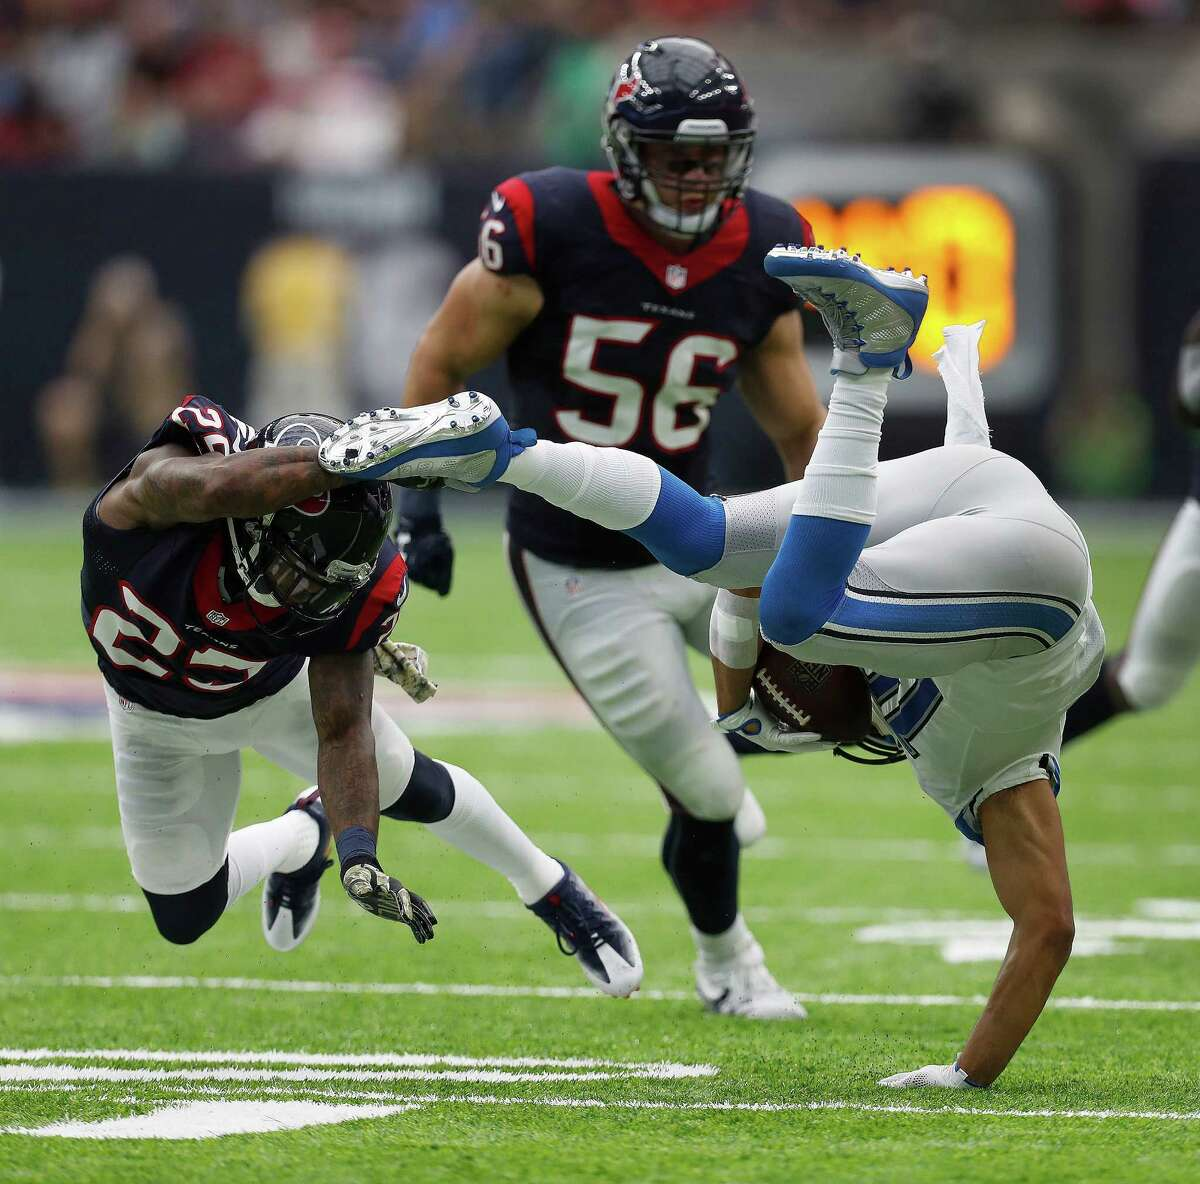 Detroit Lions wide receiver Golden Tate (15) gets upended by Houston Texans cornerback Kareem Jackson (25) during the fourth quarter an NFL football game at NRG Stadium, Sunday,Oct. 30, 2016 in Houston.